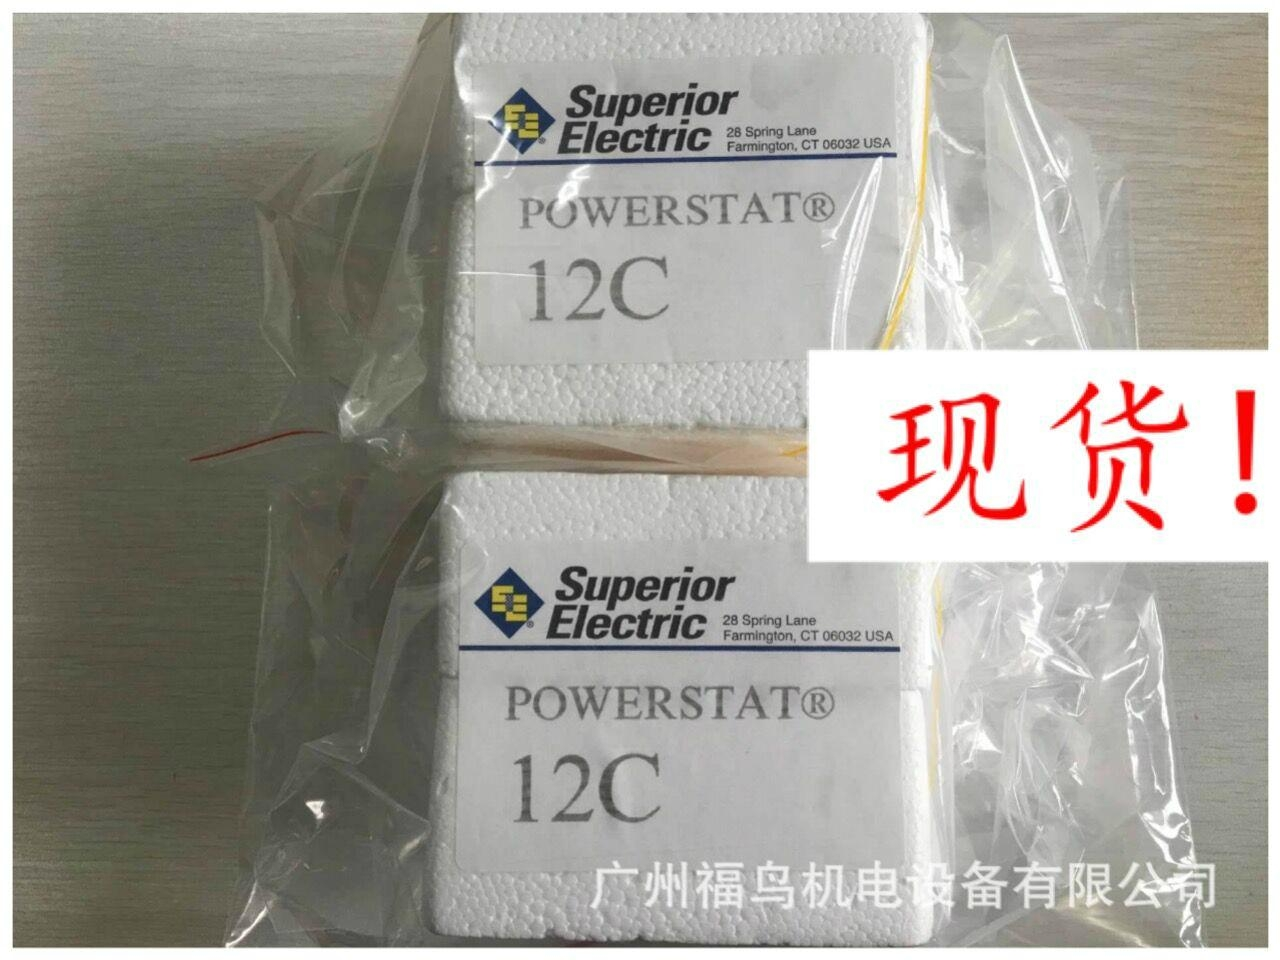 SUPERIOR ELECTRIC调压器, 型号: 12C